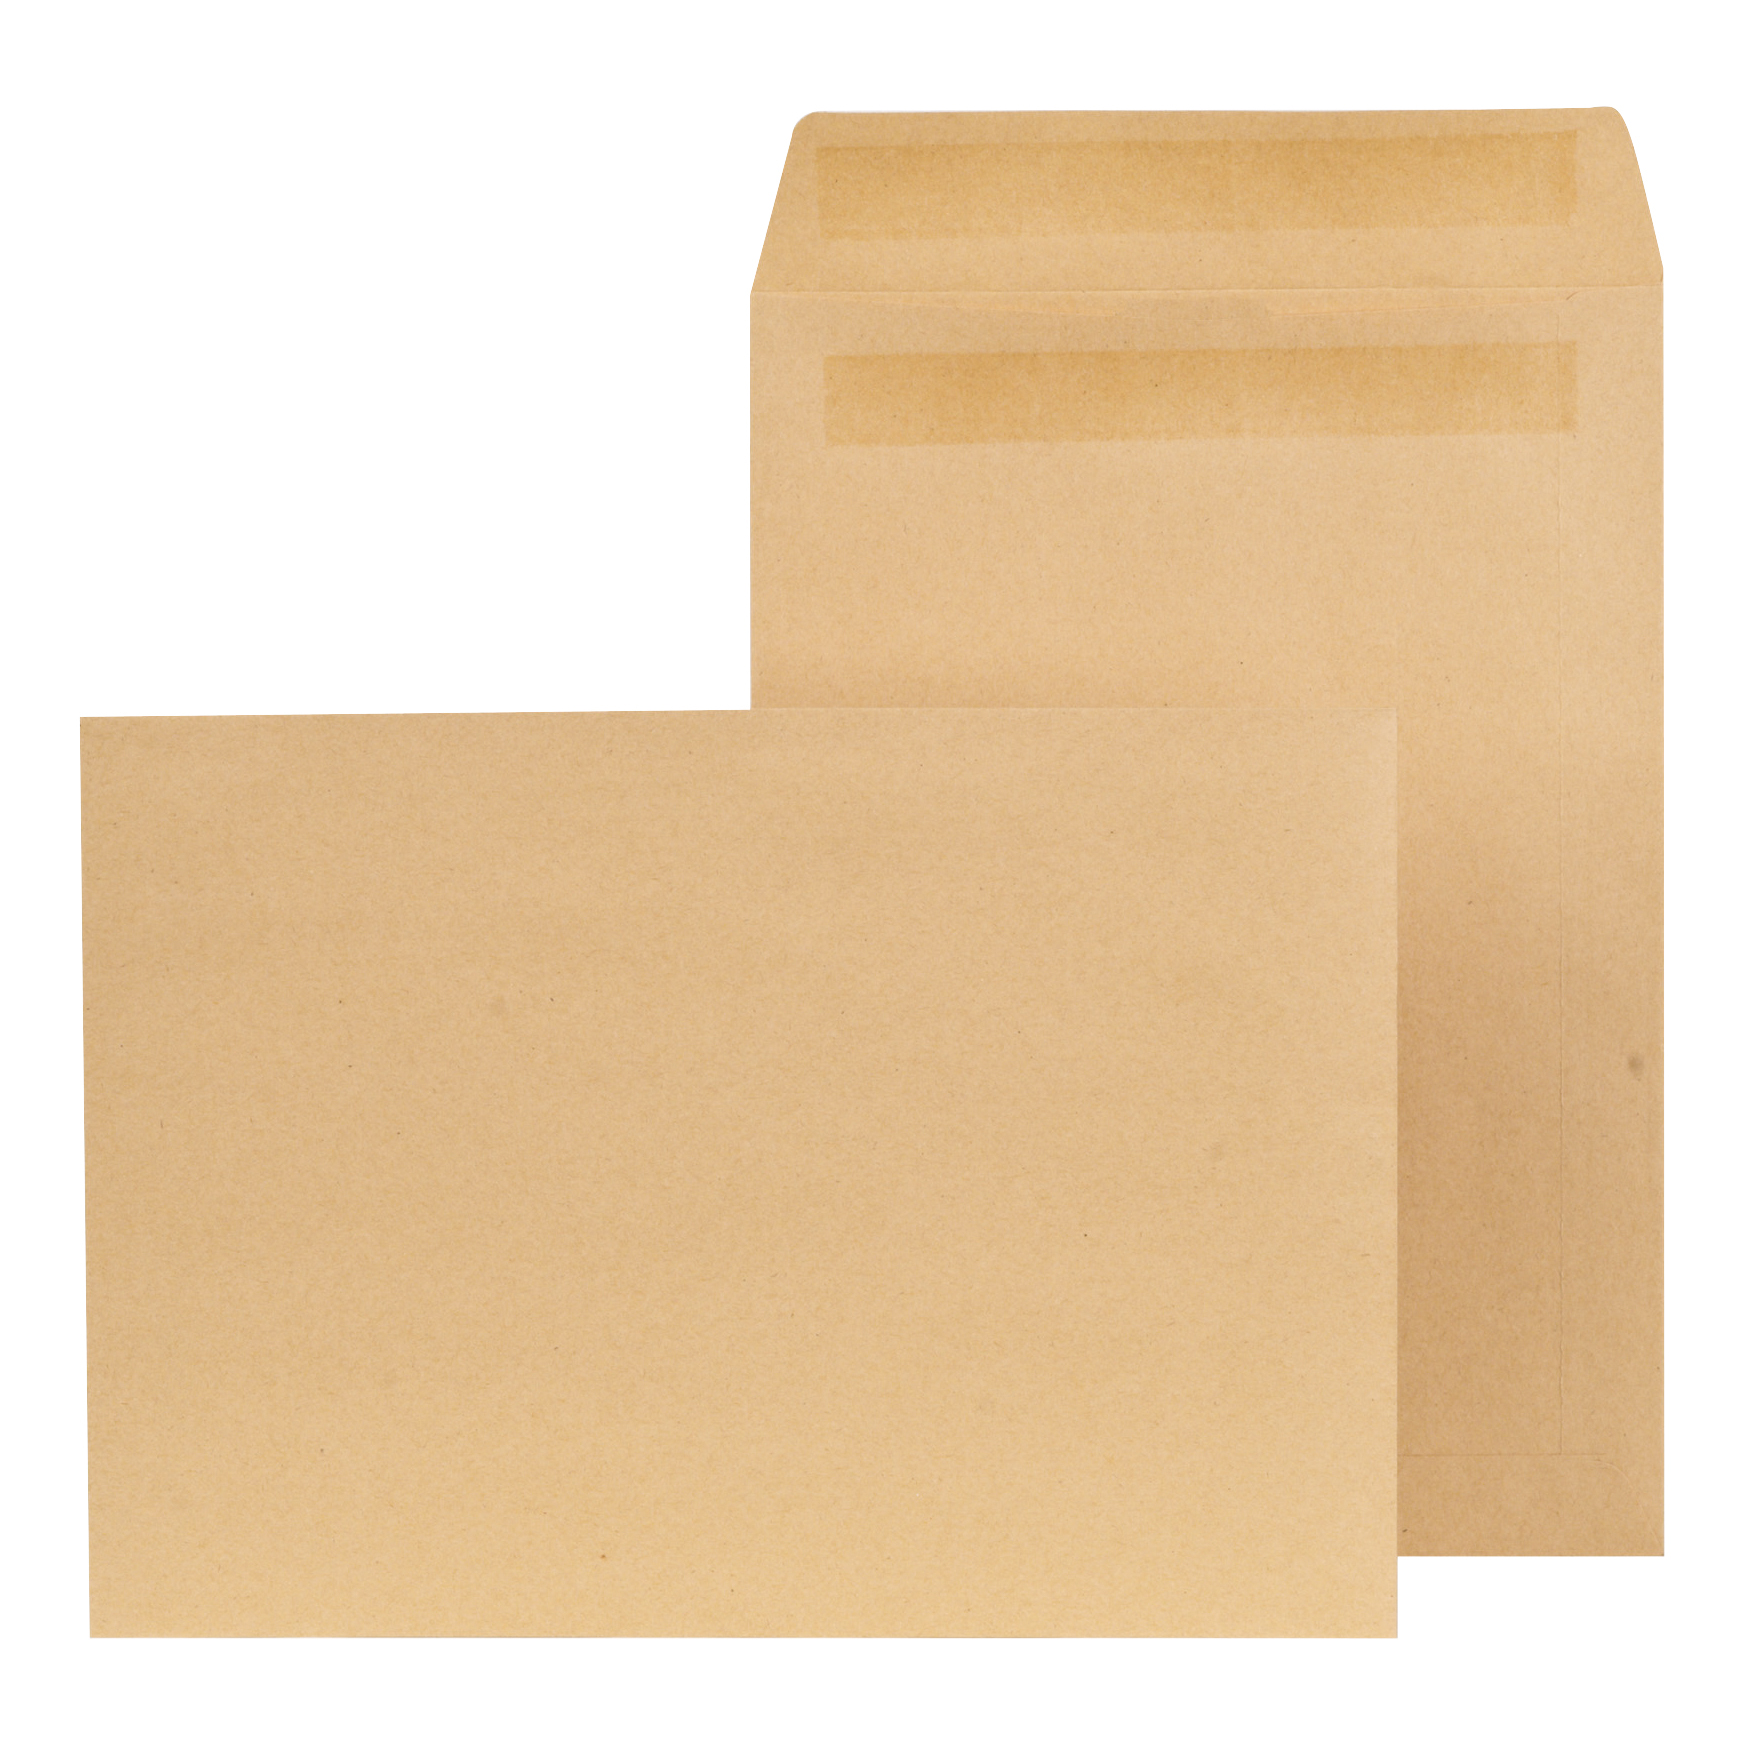 New Guardian Envelopes Pocket Self Seal Lightweight 90gsm C4 324x229mm Manilla Ref K26309 Pack 250